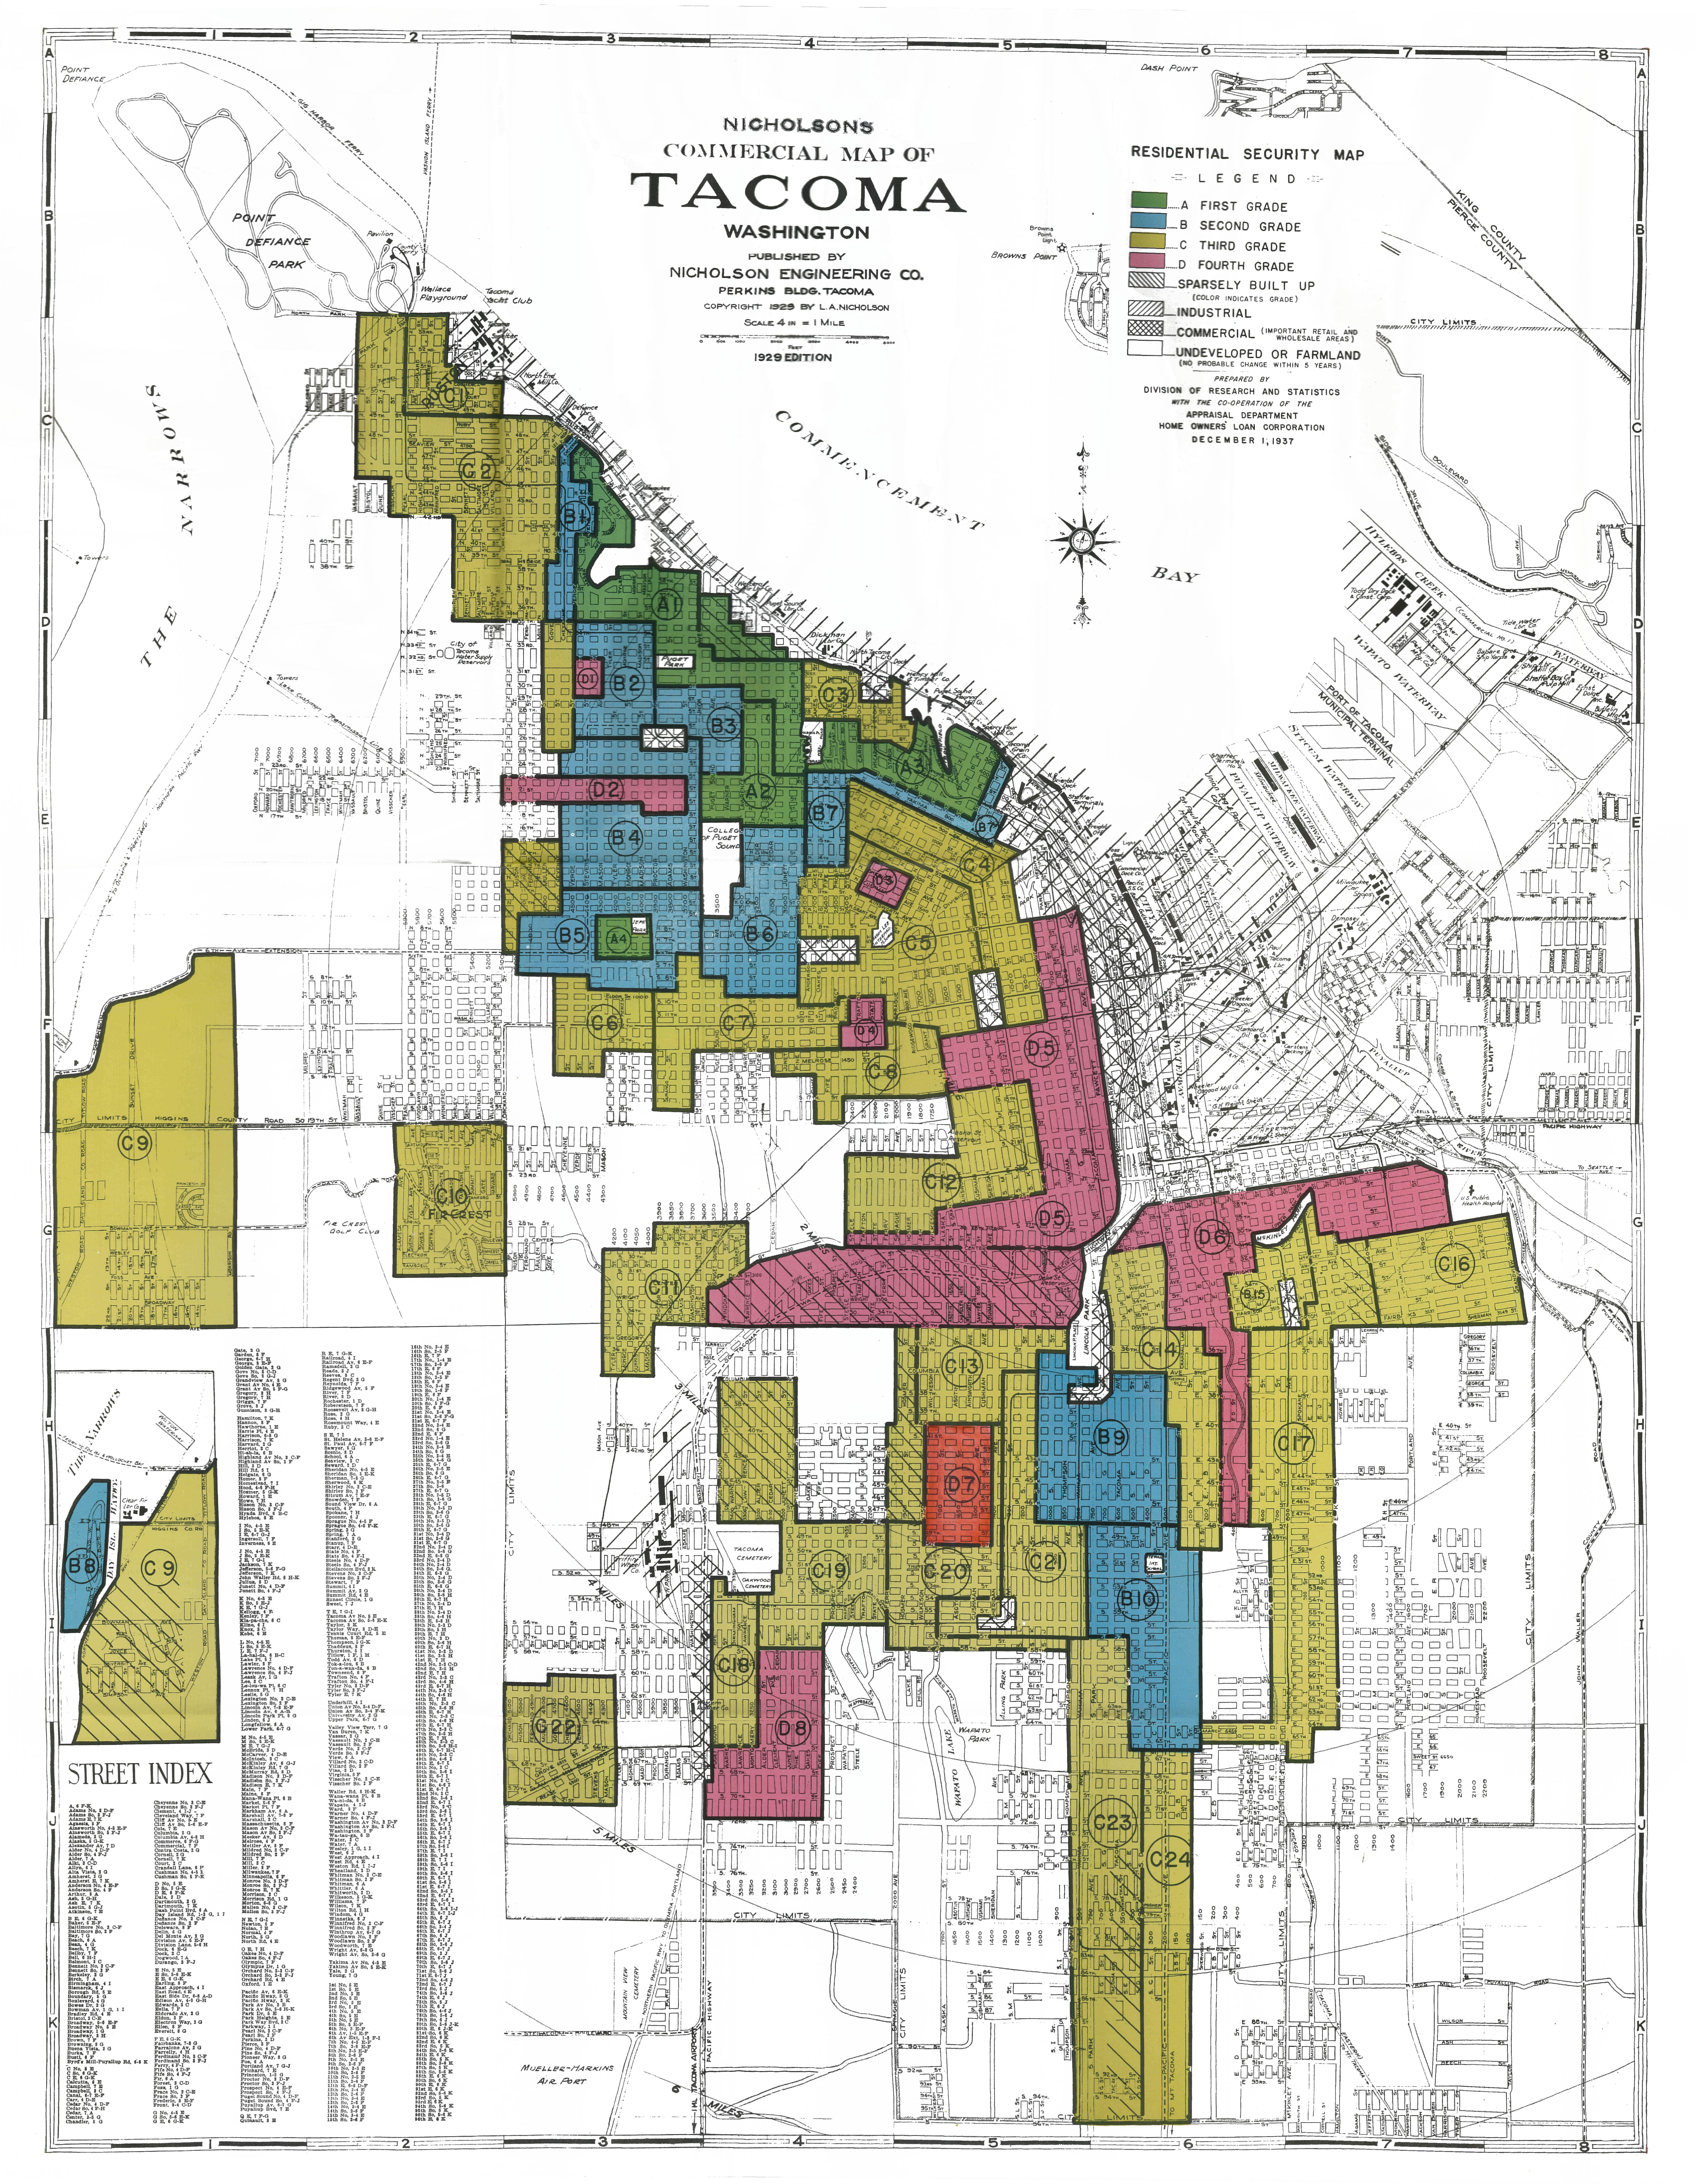 Why Equity City of Tacoma